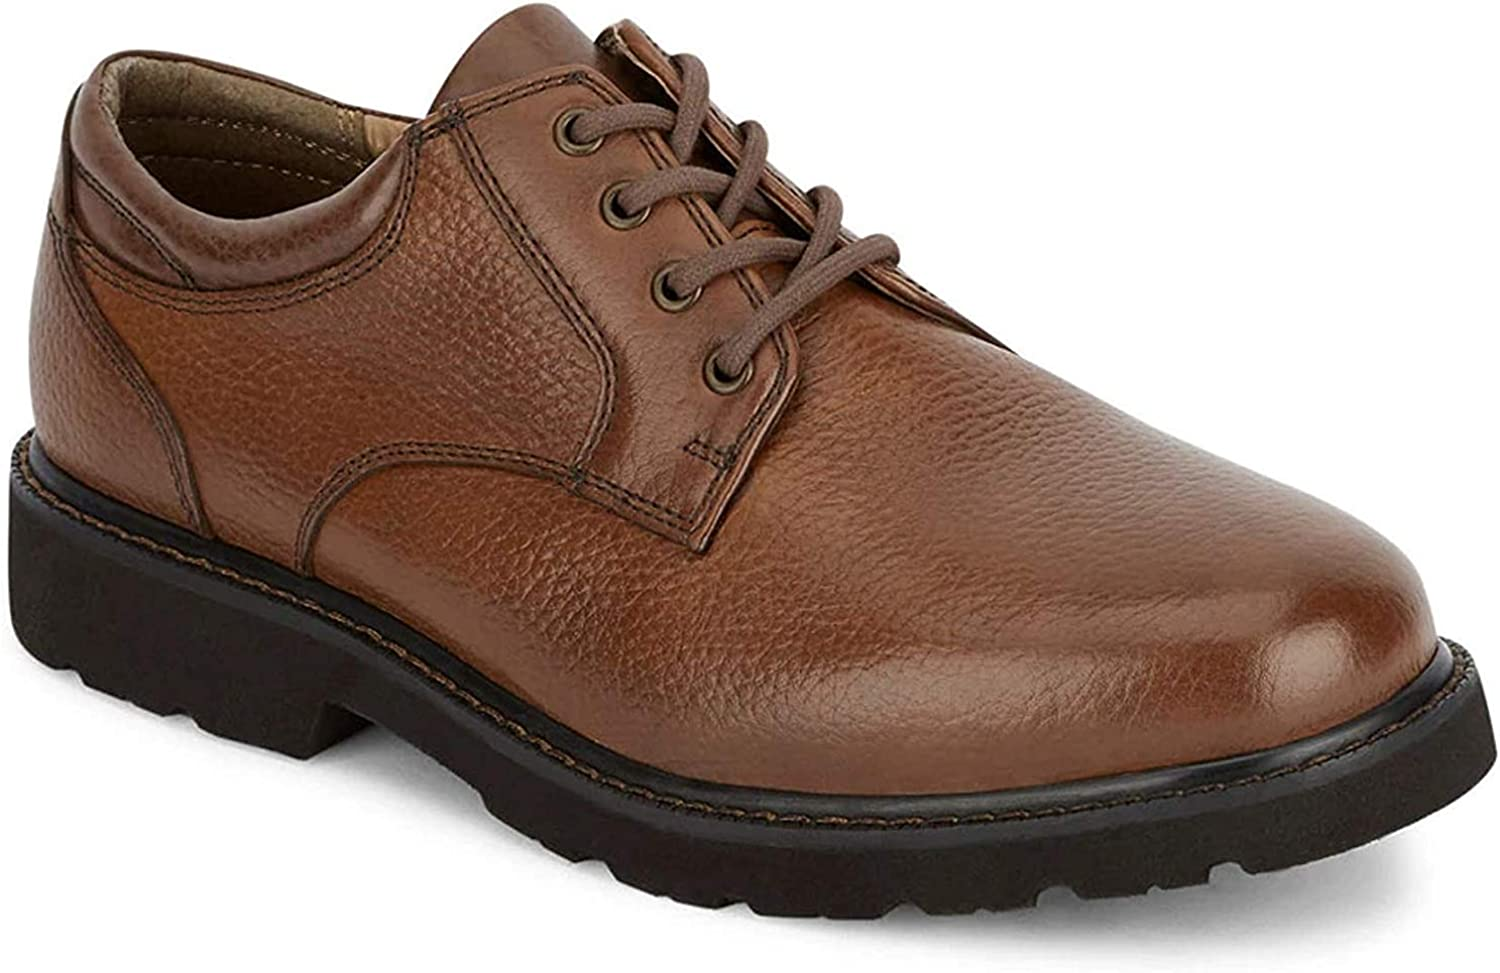 Dockers Men's Shelter Plain-Toe Oxford